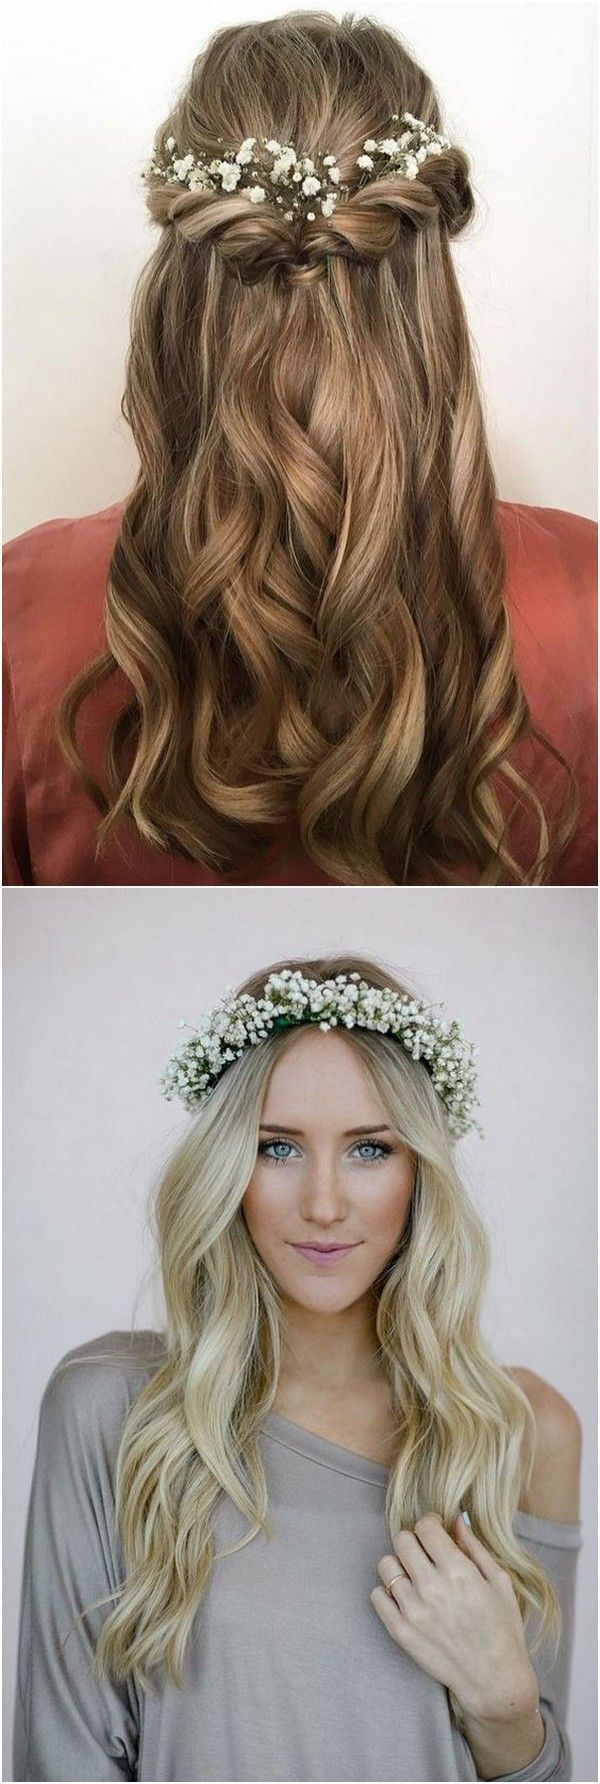 long wedding hairstyles with babies breathe #babies #styles #wedding #lange